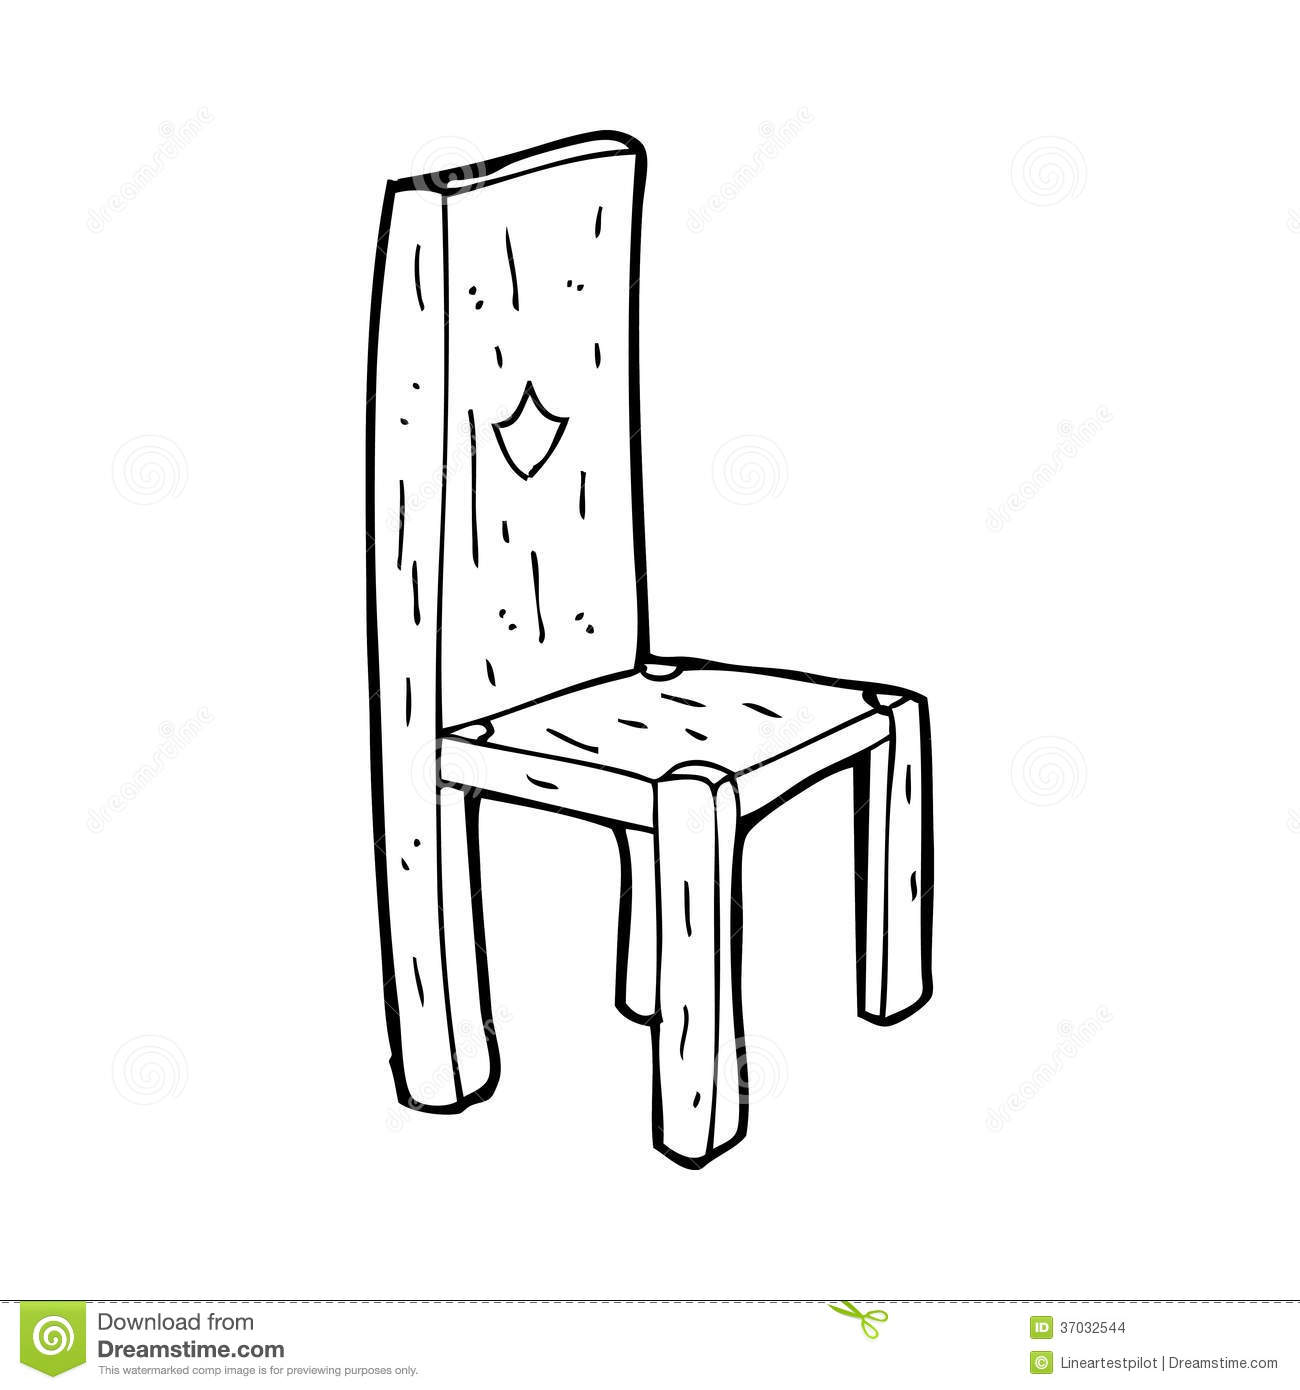 Black and white chair drawing - Cartoon White Chair Jpg 1300x1390 Cartoon Black And White Armchair